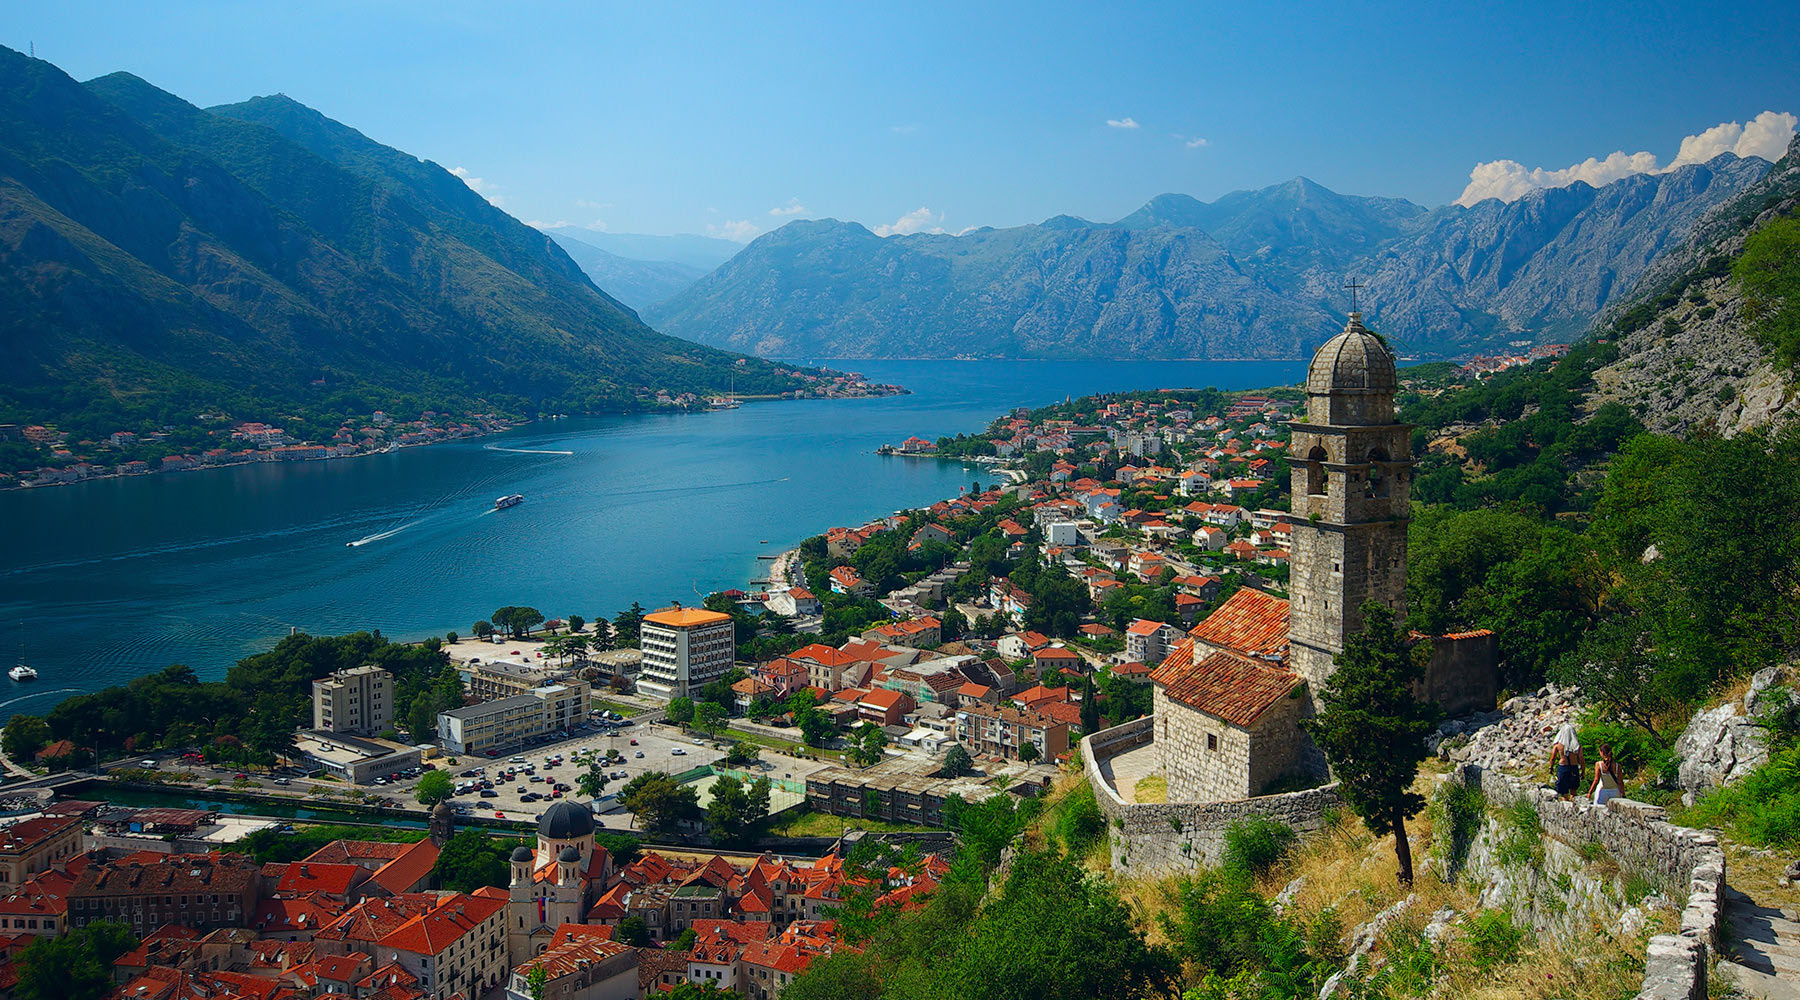 Kotor, a coastal town in Montenegro on the Adriatic